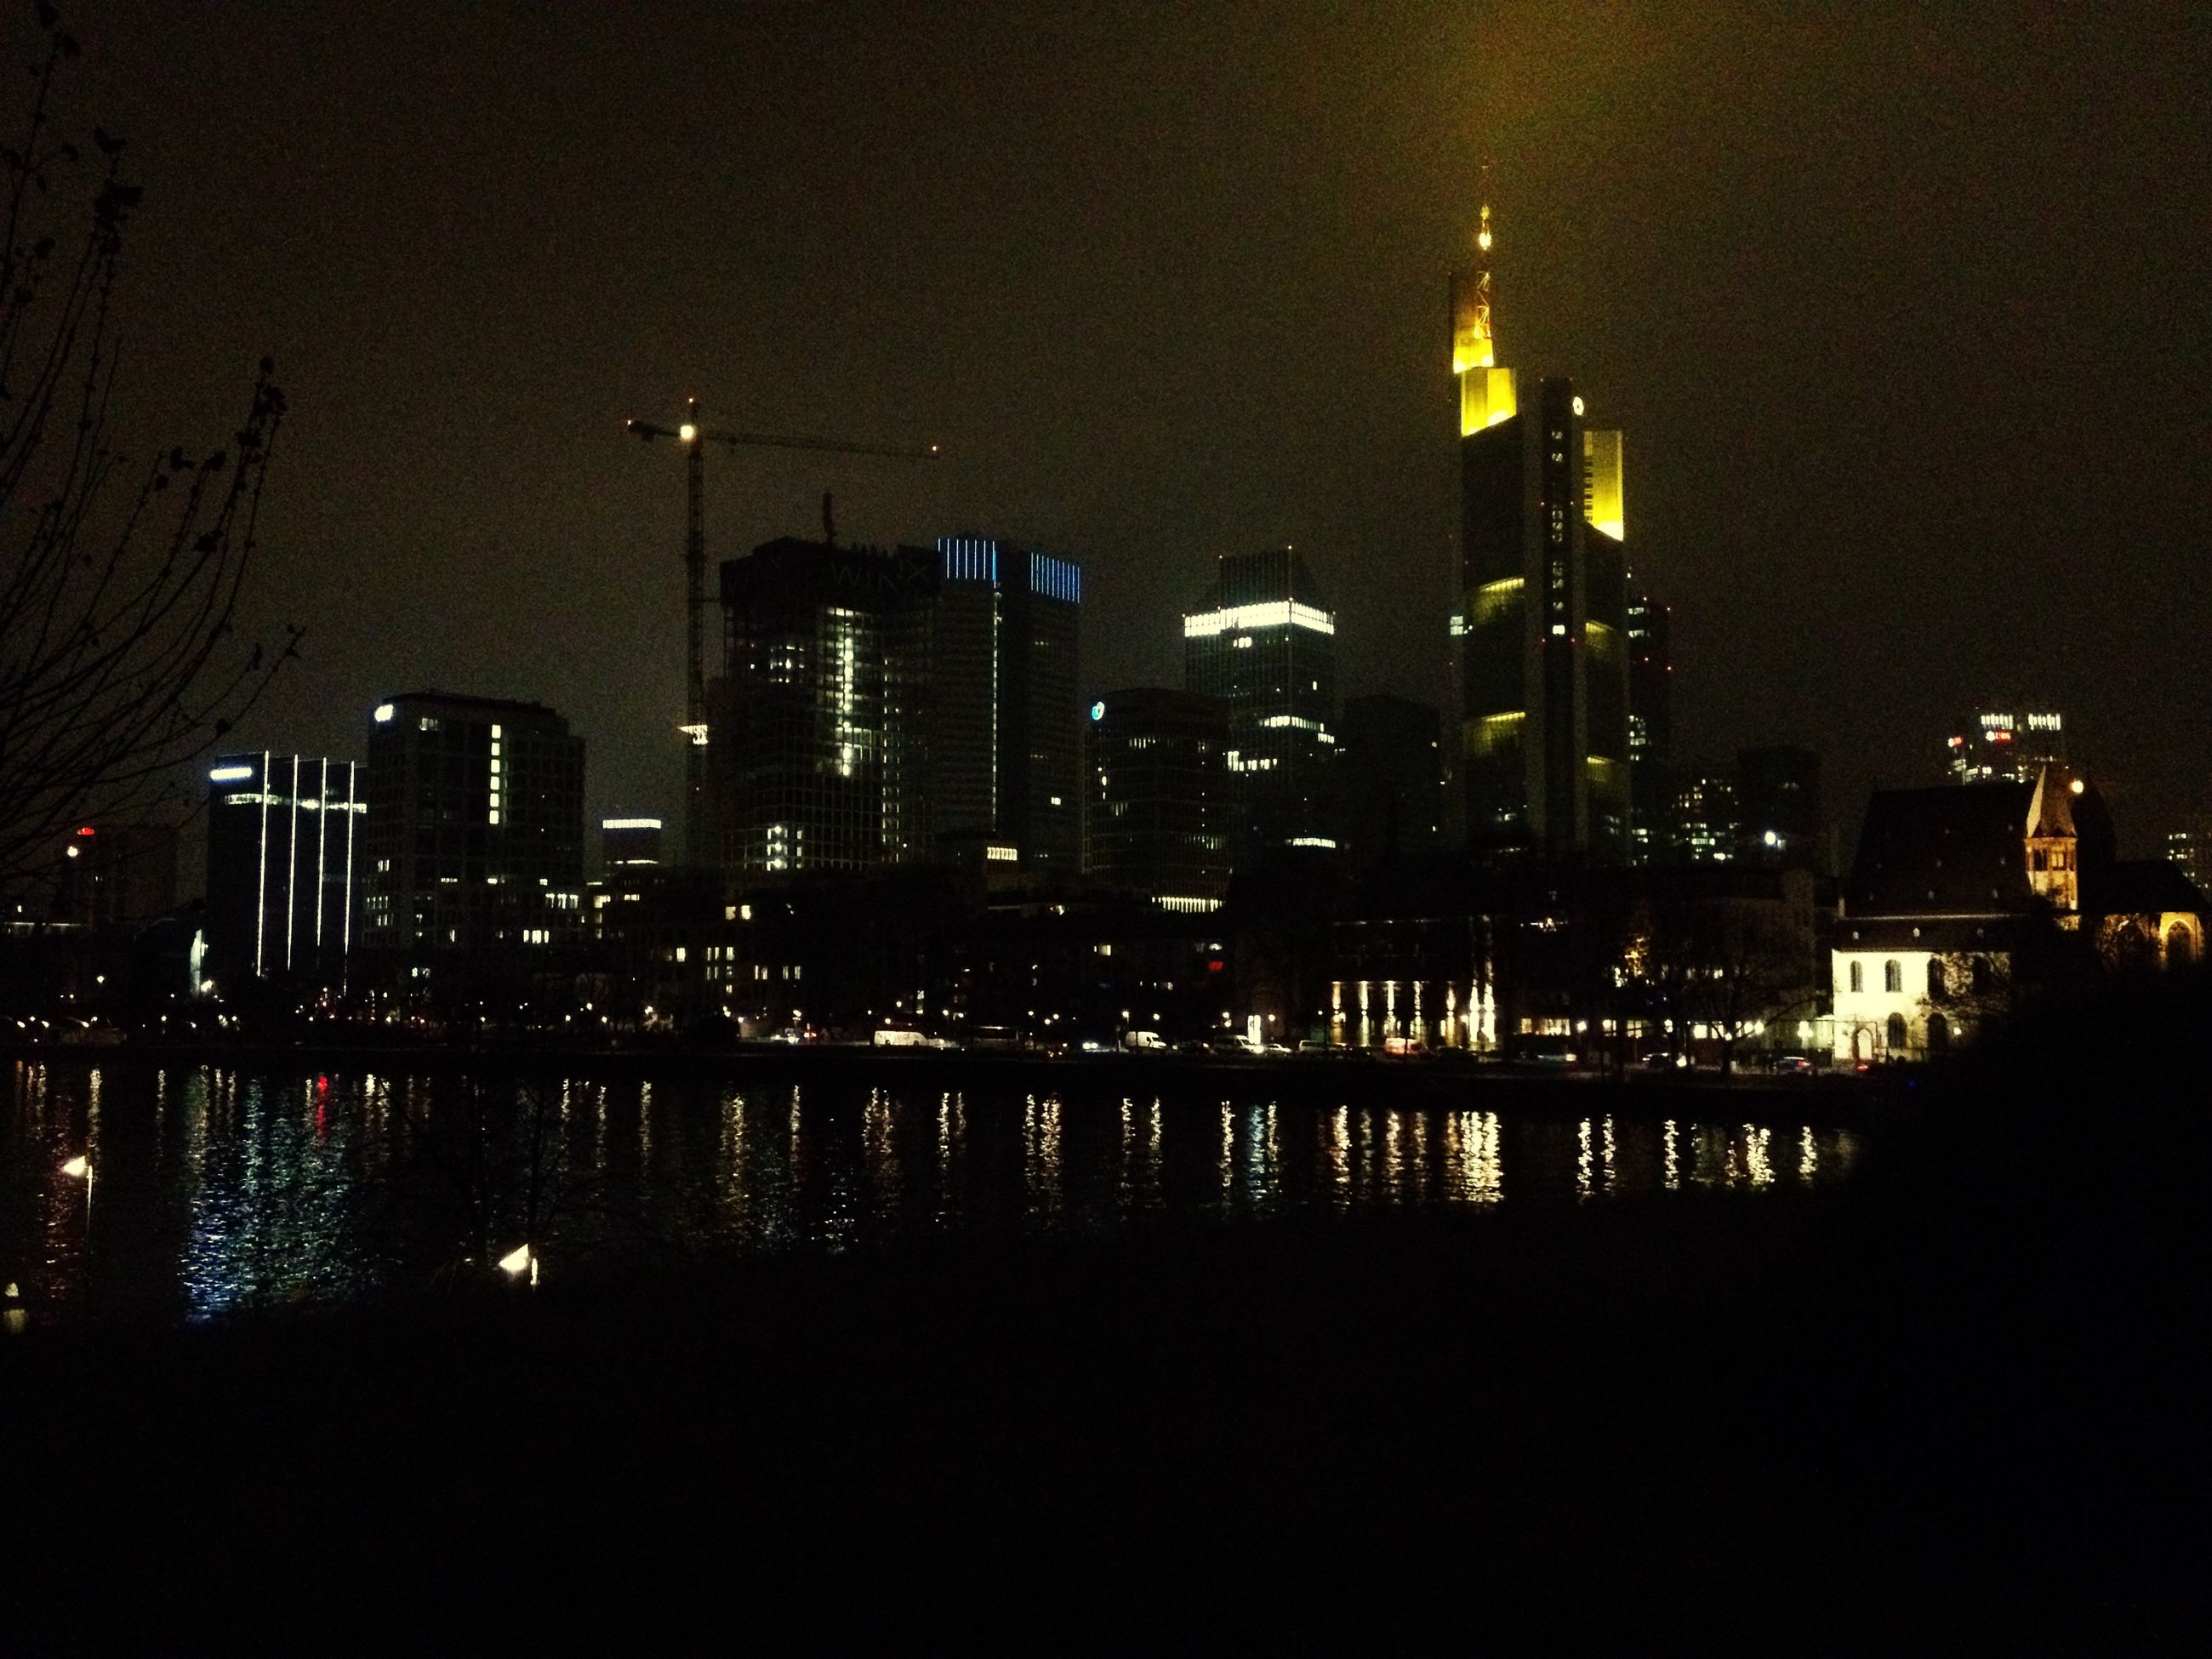 night, illuminated, city, architecture, building exterior, travel destinations, no people, built structure, tower, skyscraper, urban skyline, outdoors, sky, modern, cityscape, water